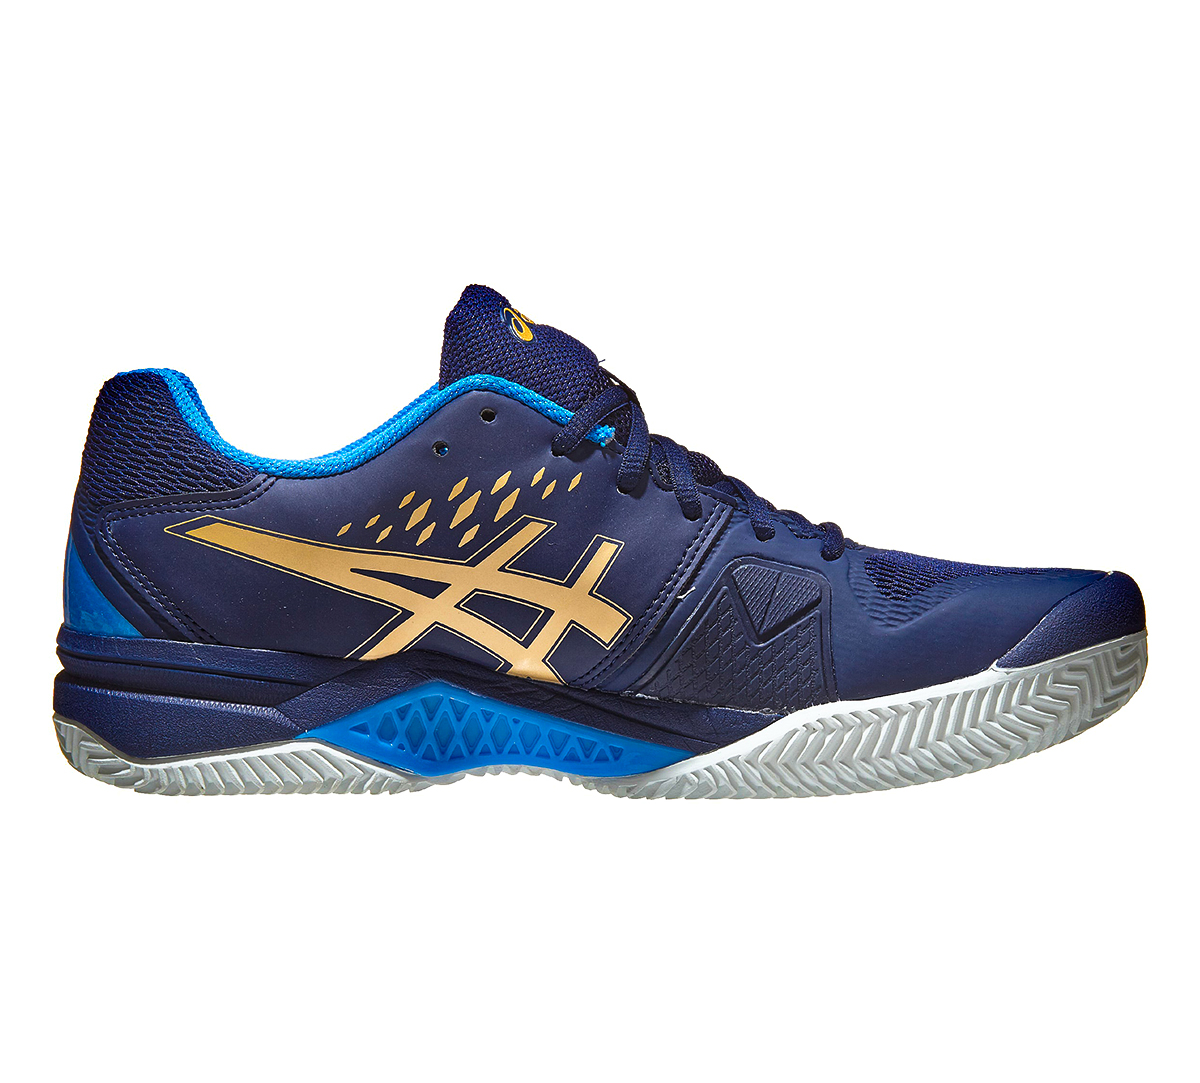 Asics Gel Challenger 12 Clay Peacoat Champagne buty